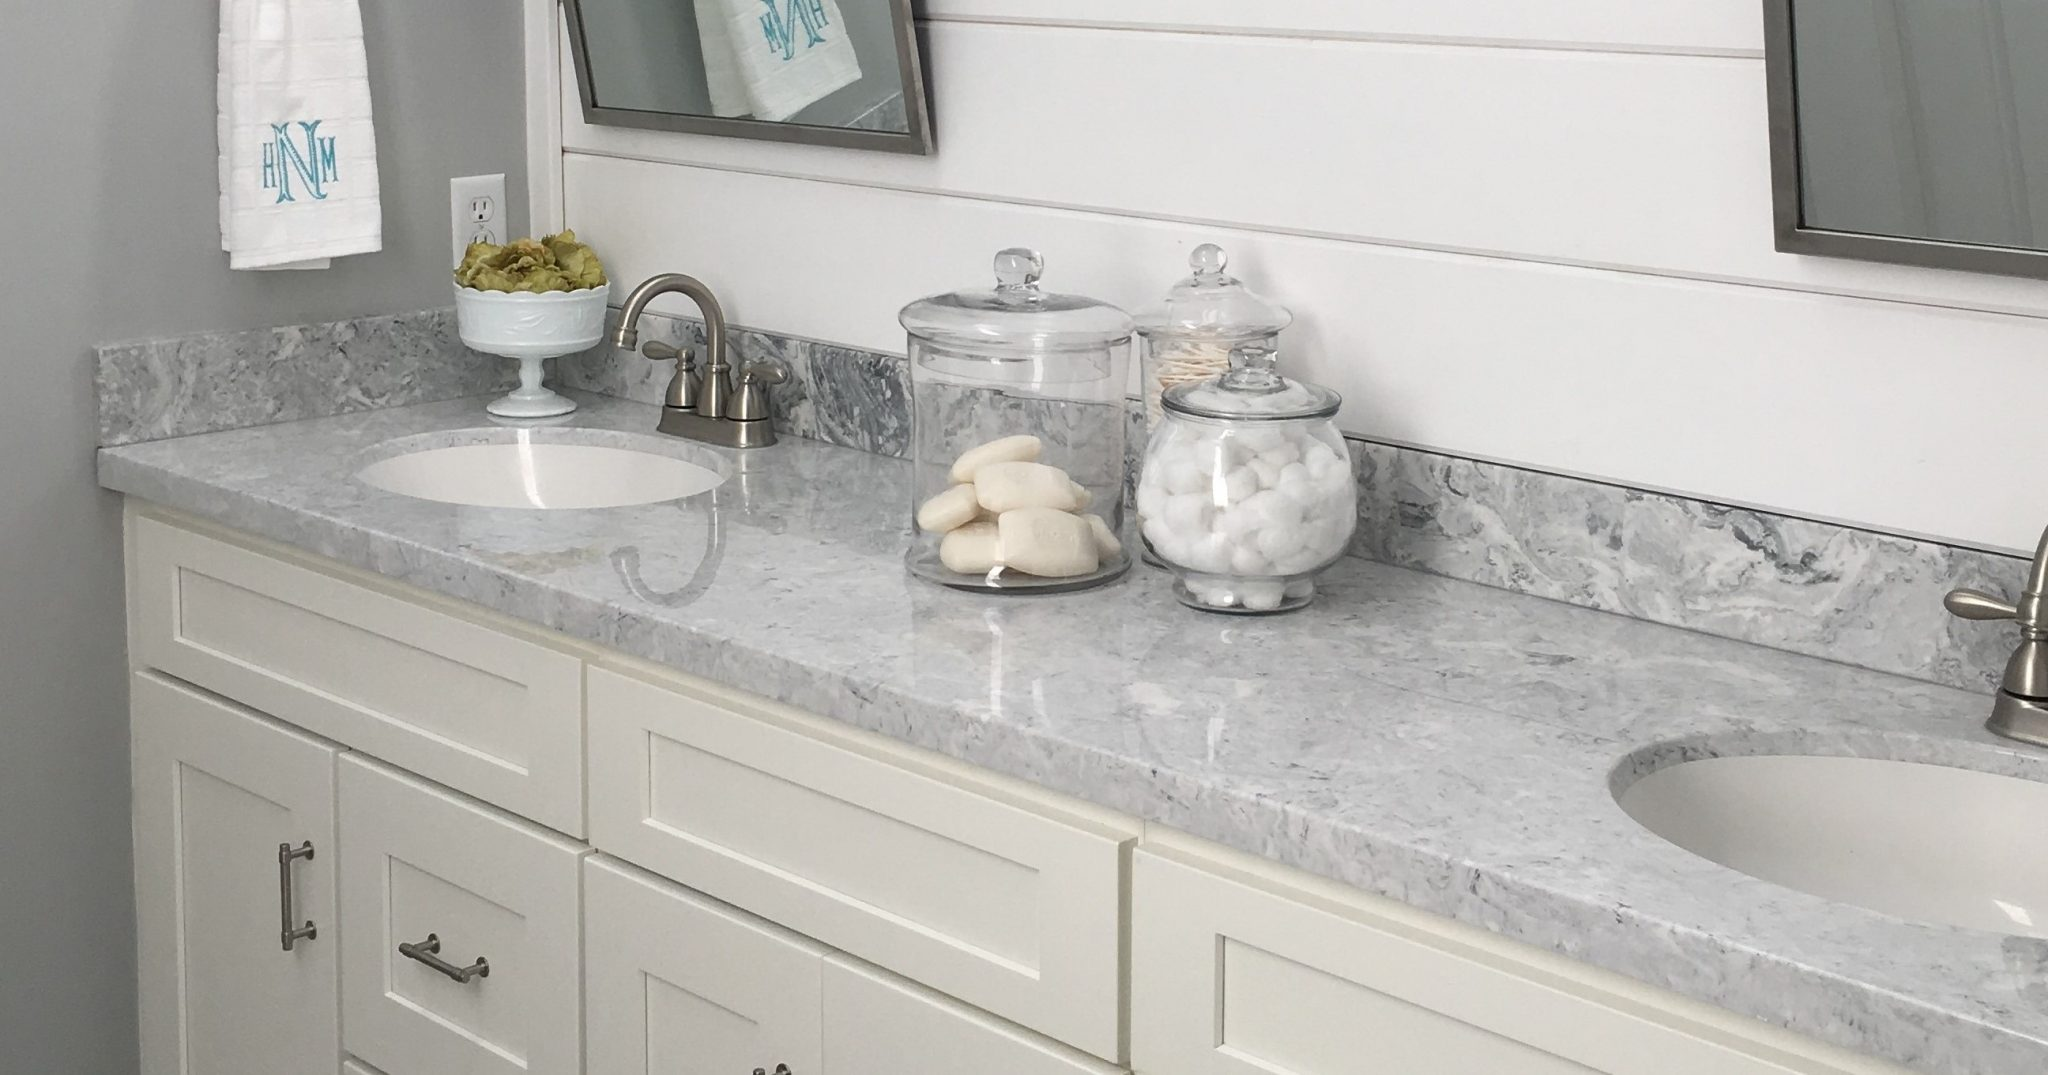 How To Order A Lowes Custom Vanity Top On A Budget Centsible Chateau